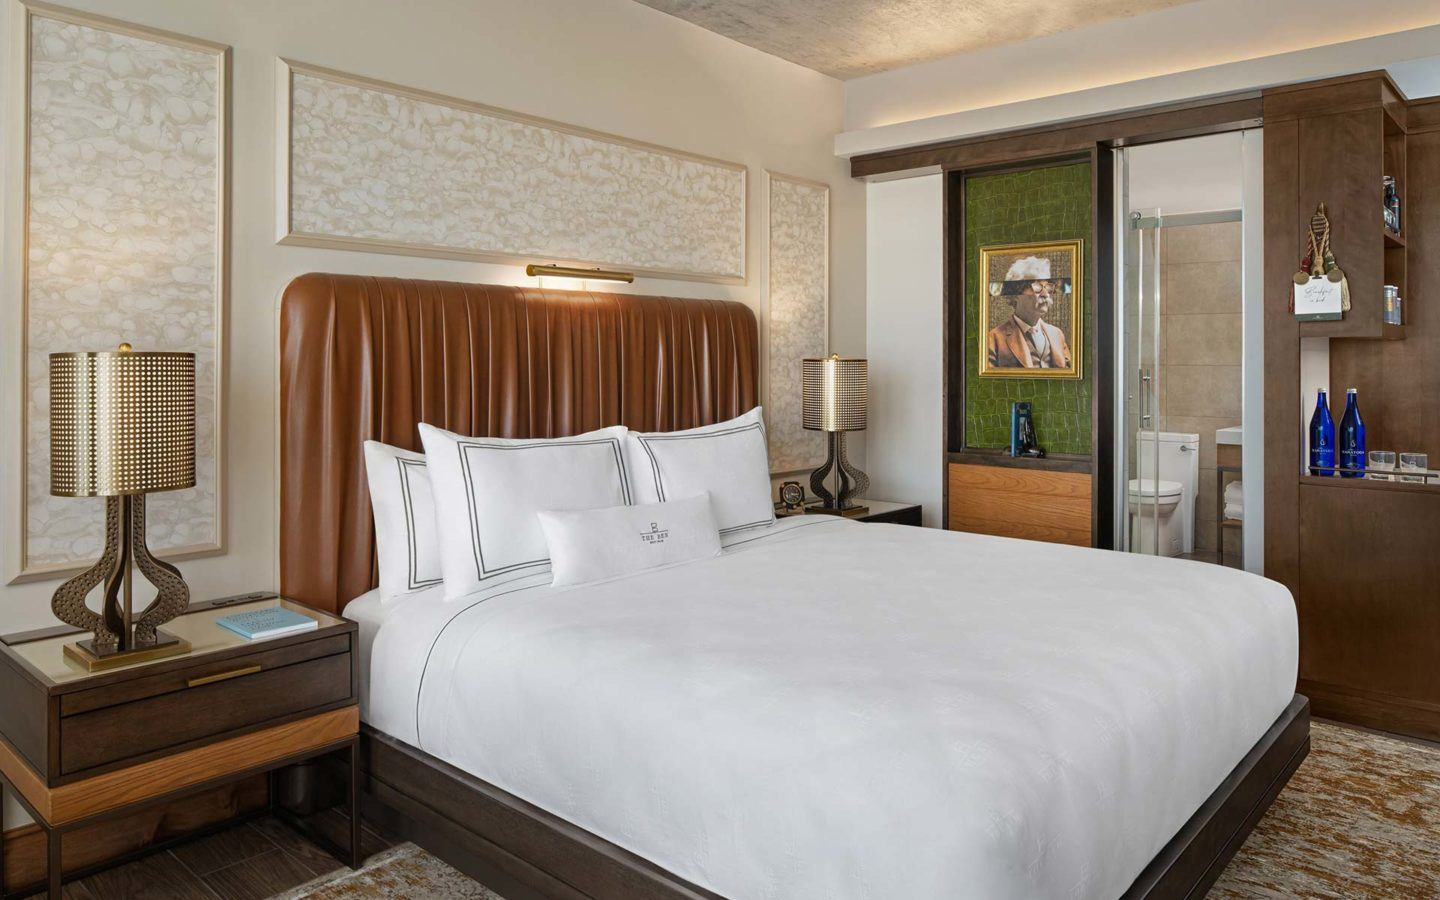 white bed linen on a king sized bed in a luxury hotel guest room